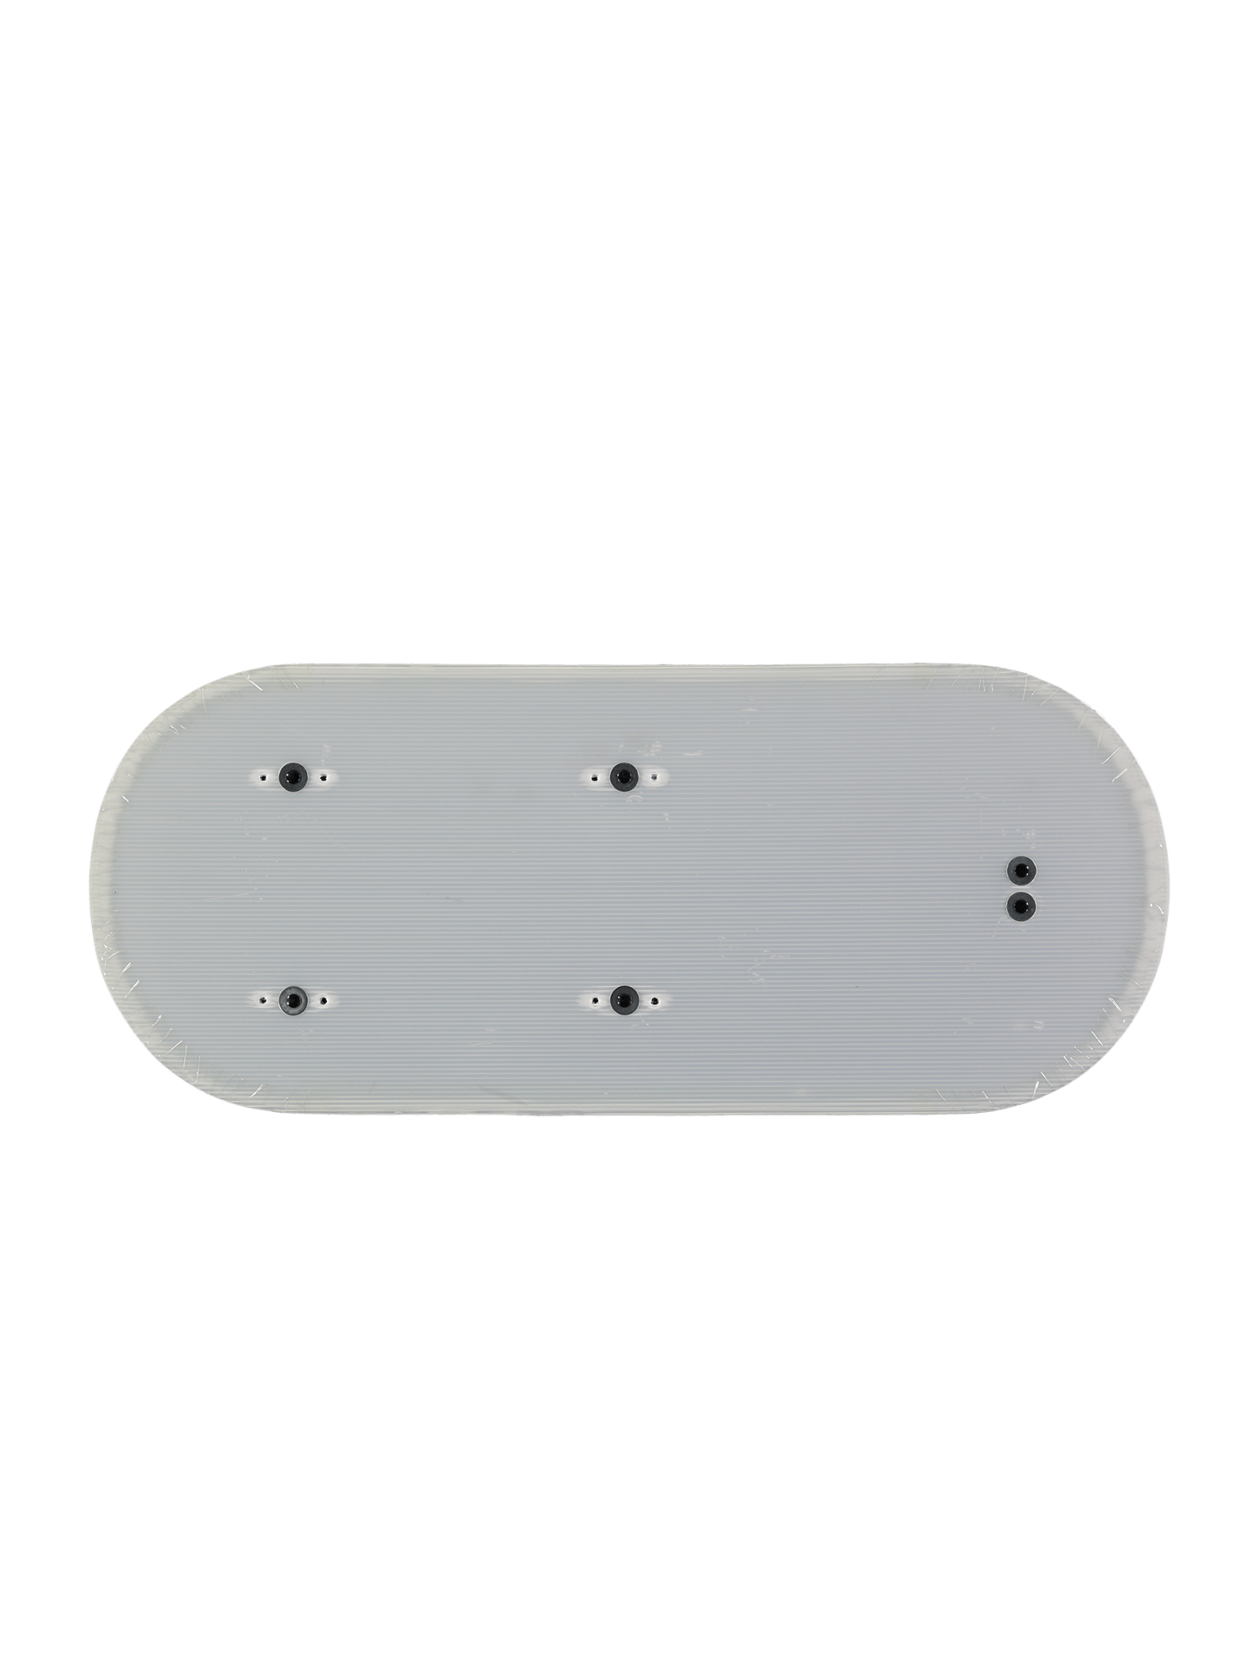 Strawberry2 Carrycot Baseboard